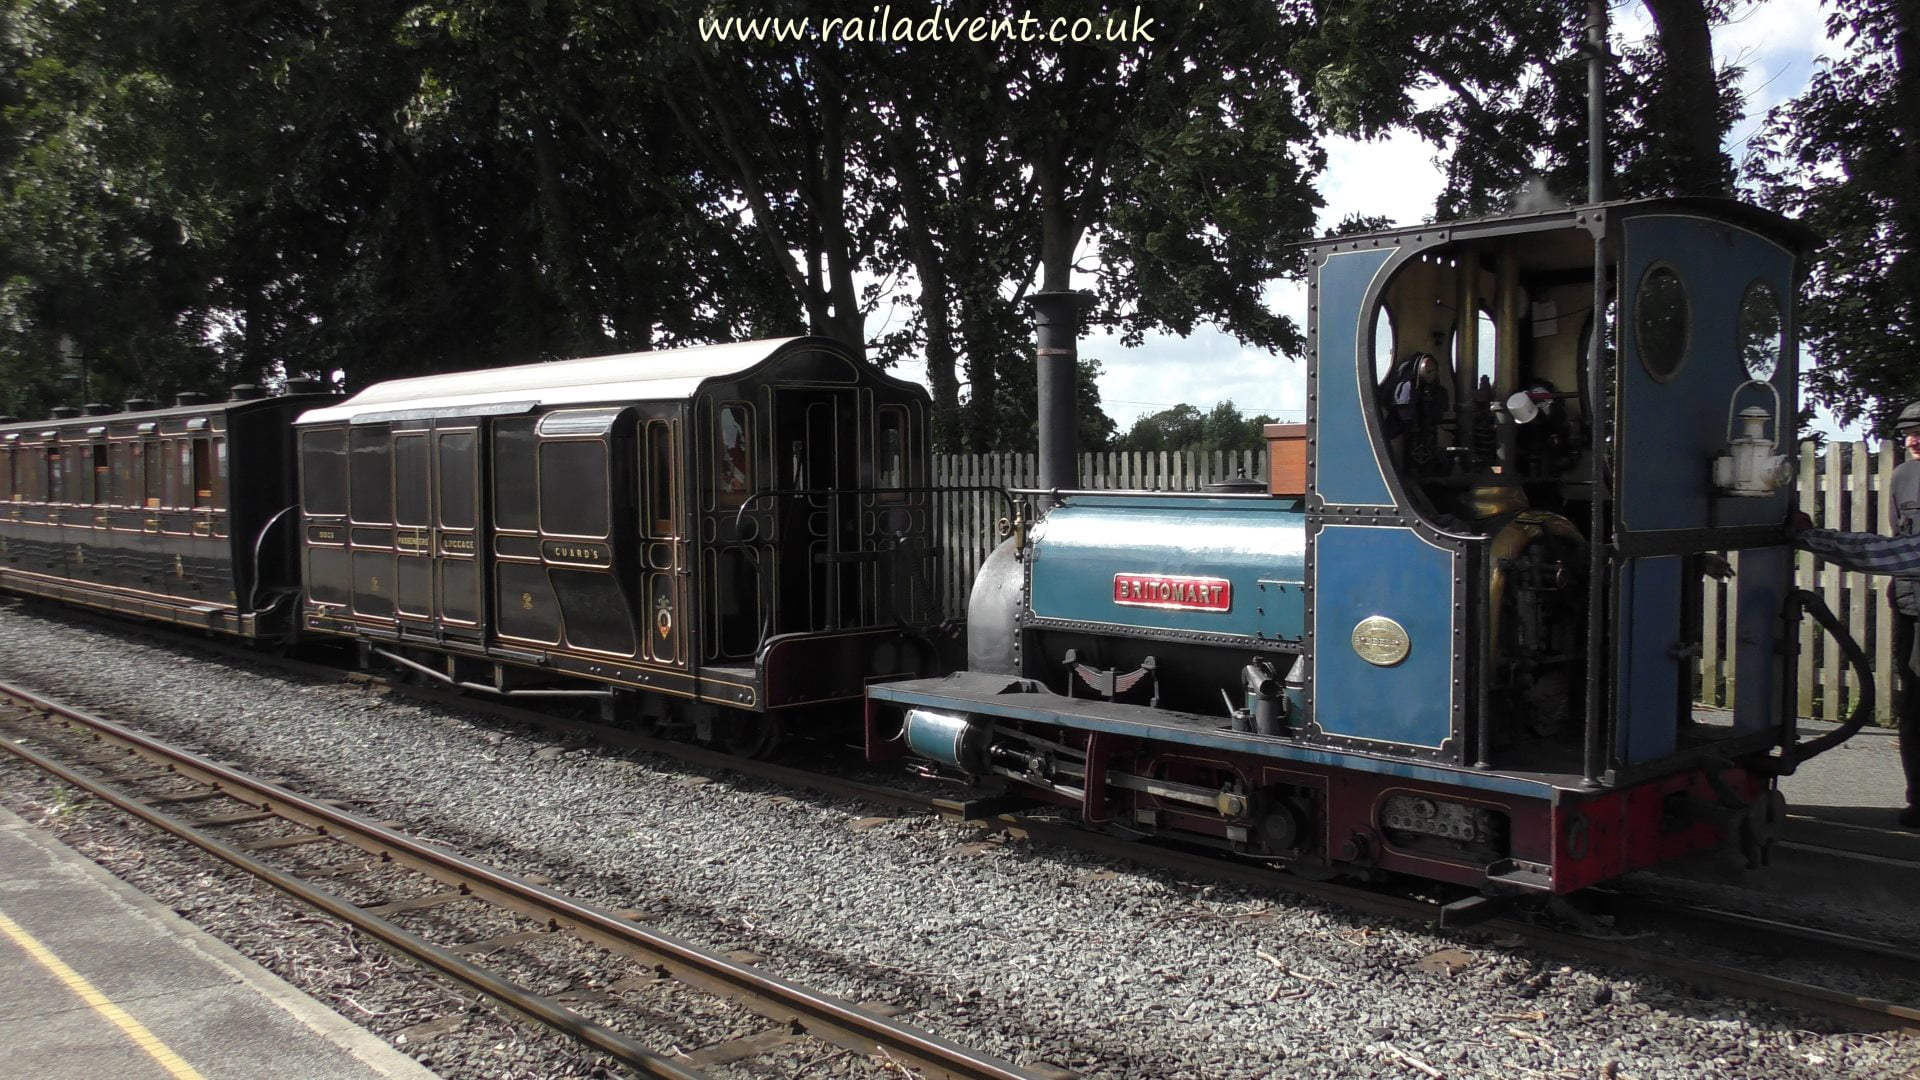 Britomart at Dinas on the Welsh Highland Railway